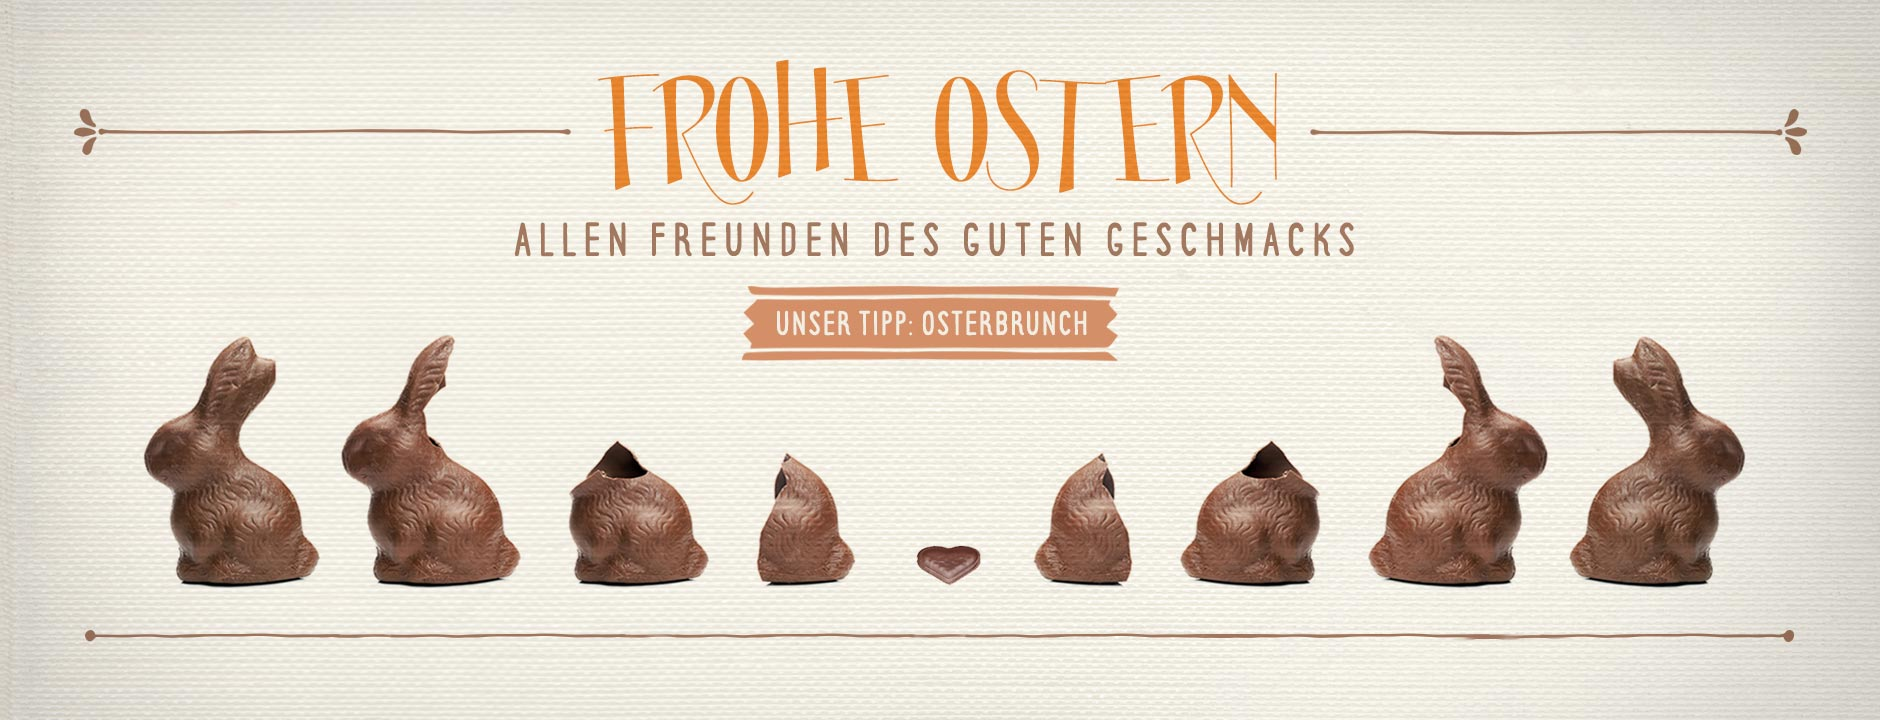 chairlines - Frohe Ostern Osterbrunch